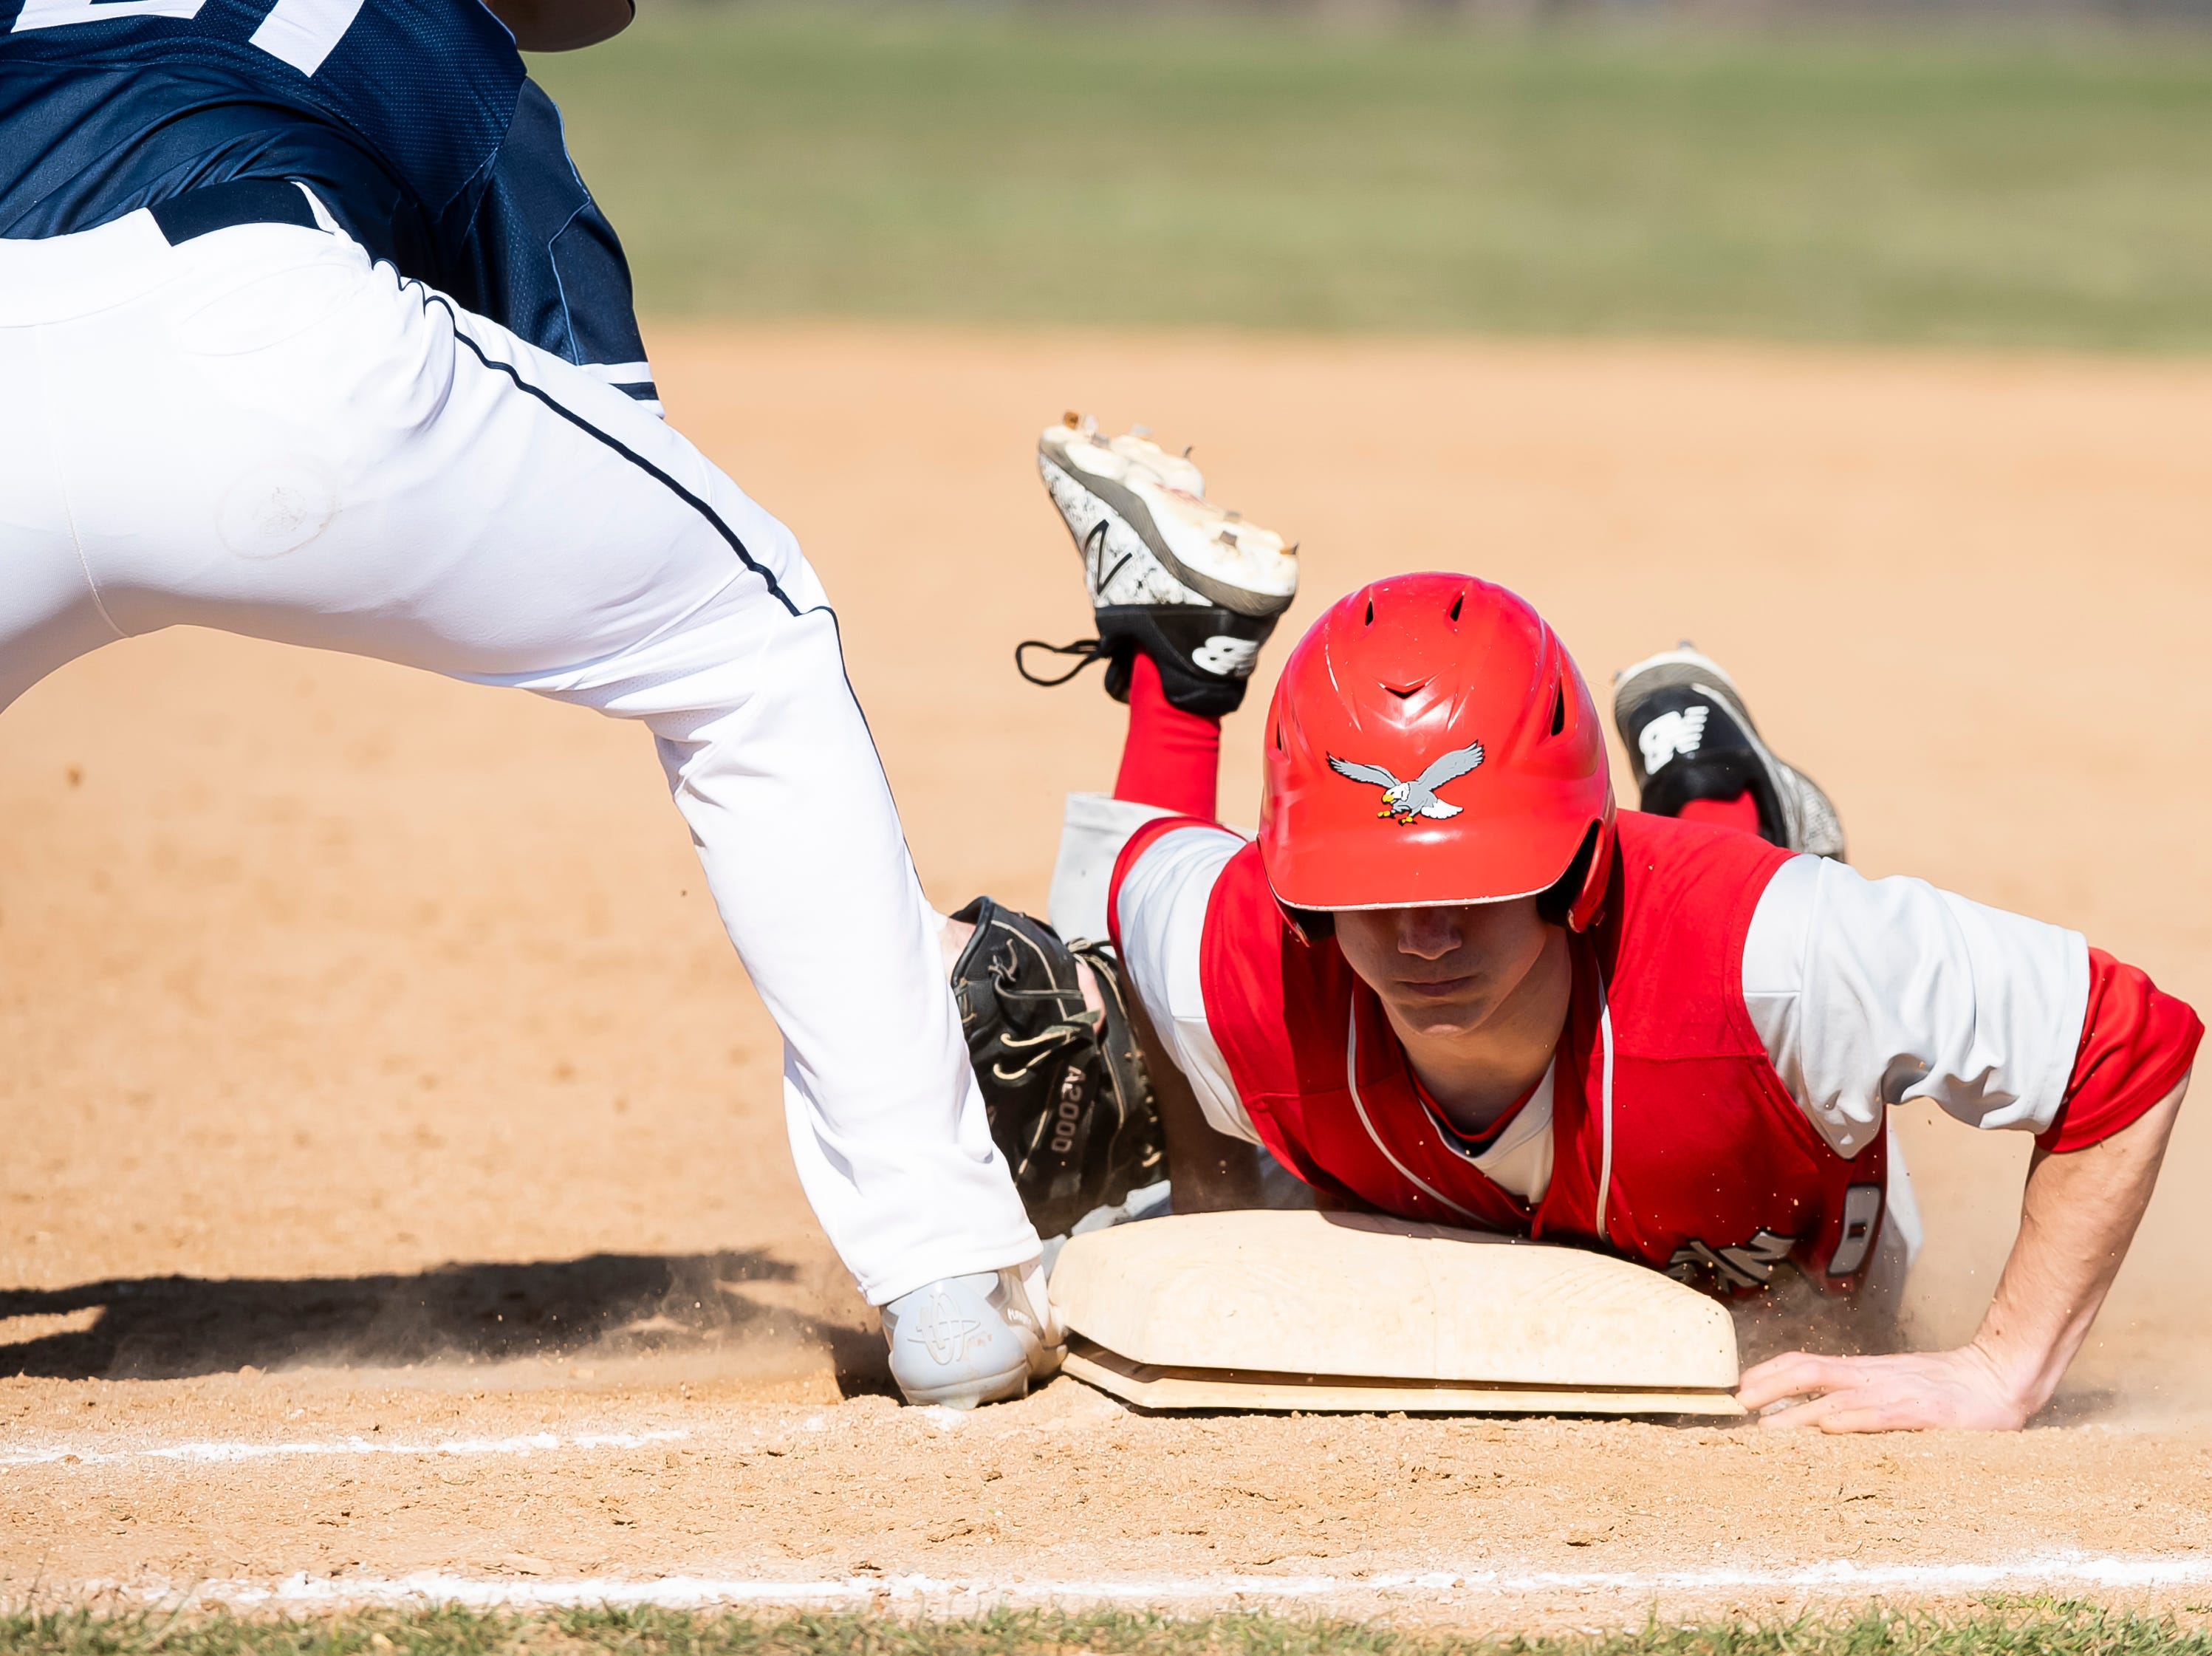 Bermudian Springs' Aden Juelich gets back to the bag safely during a YAIAA baseball game against West York on Wednesday, April 3, 2019. The Eagles fell 14-11.